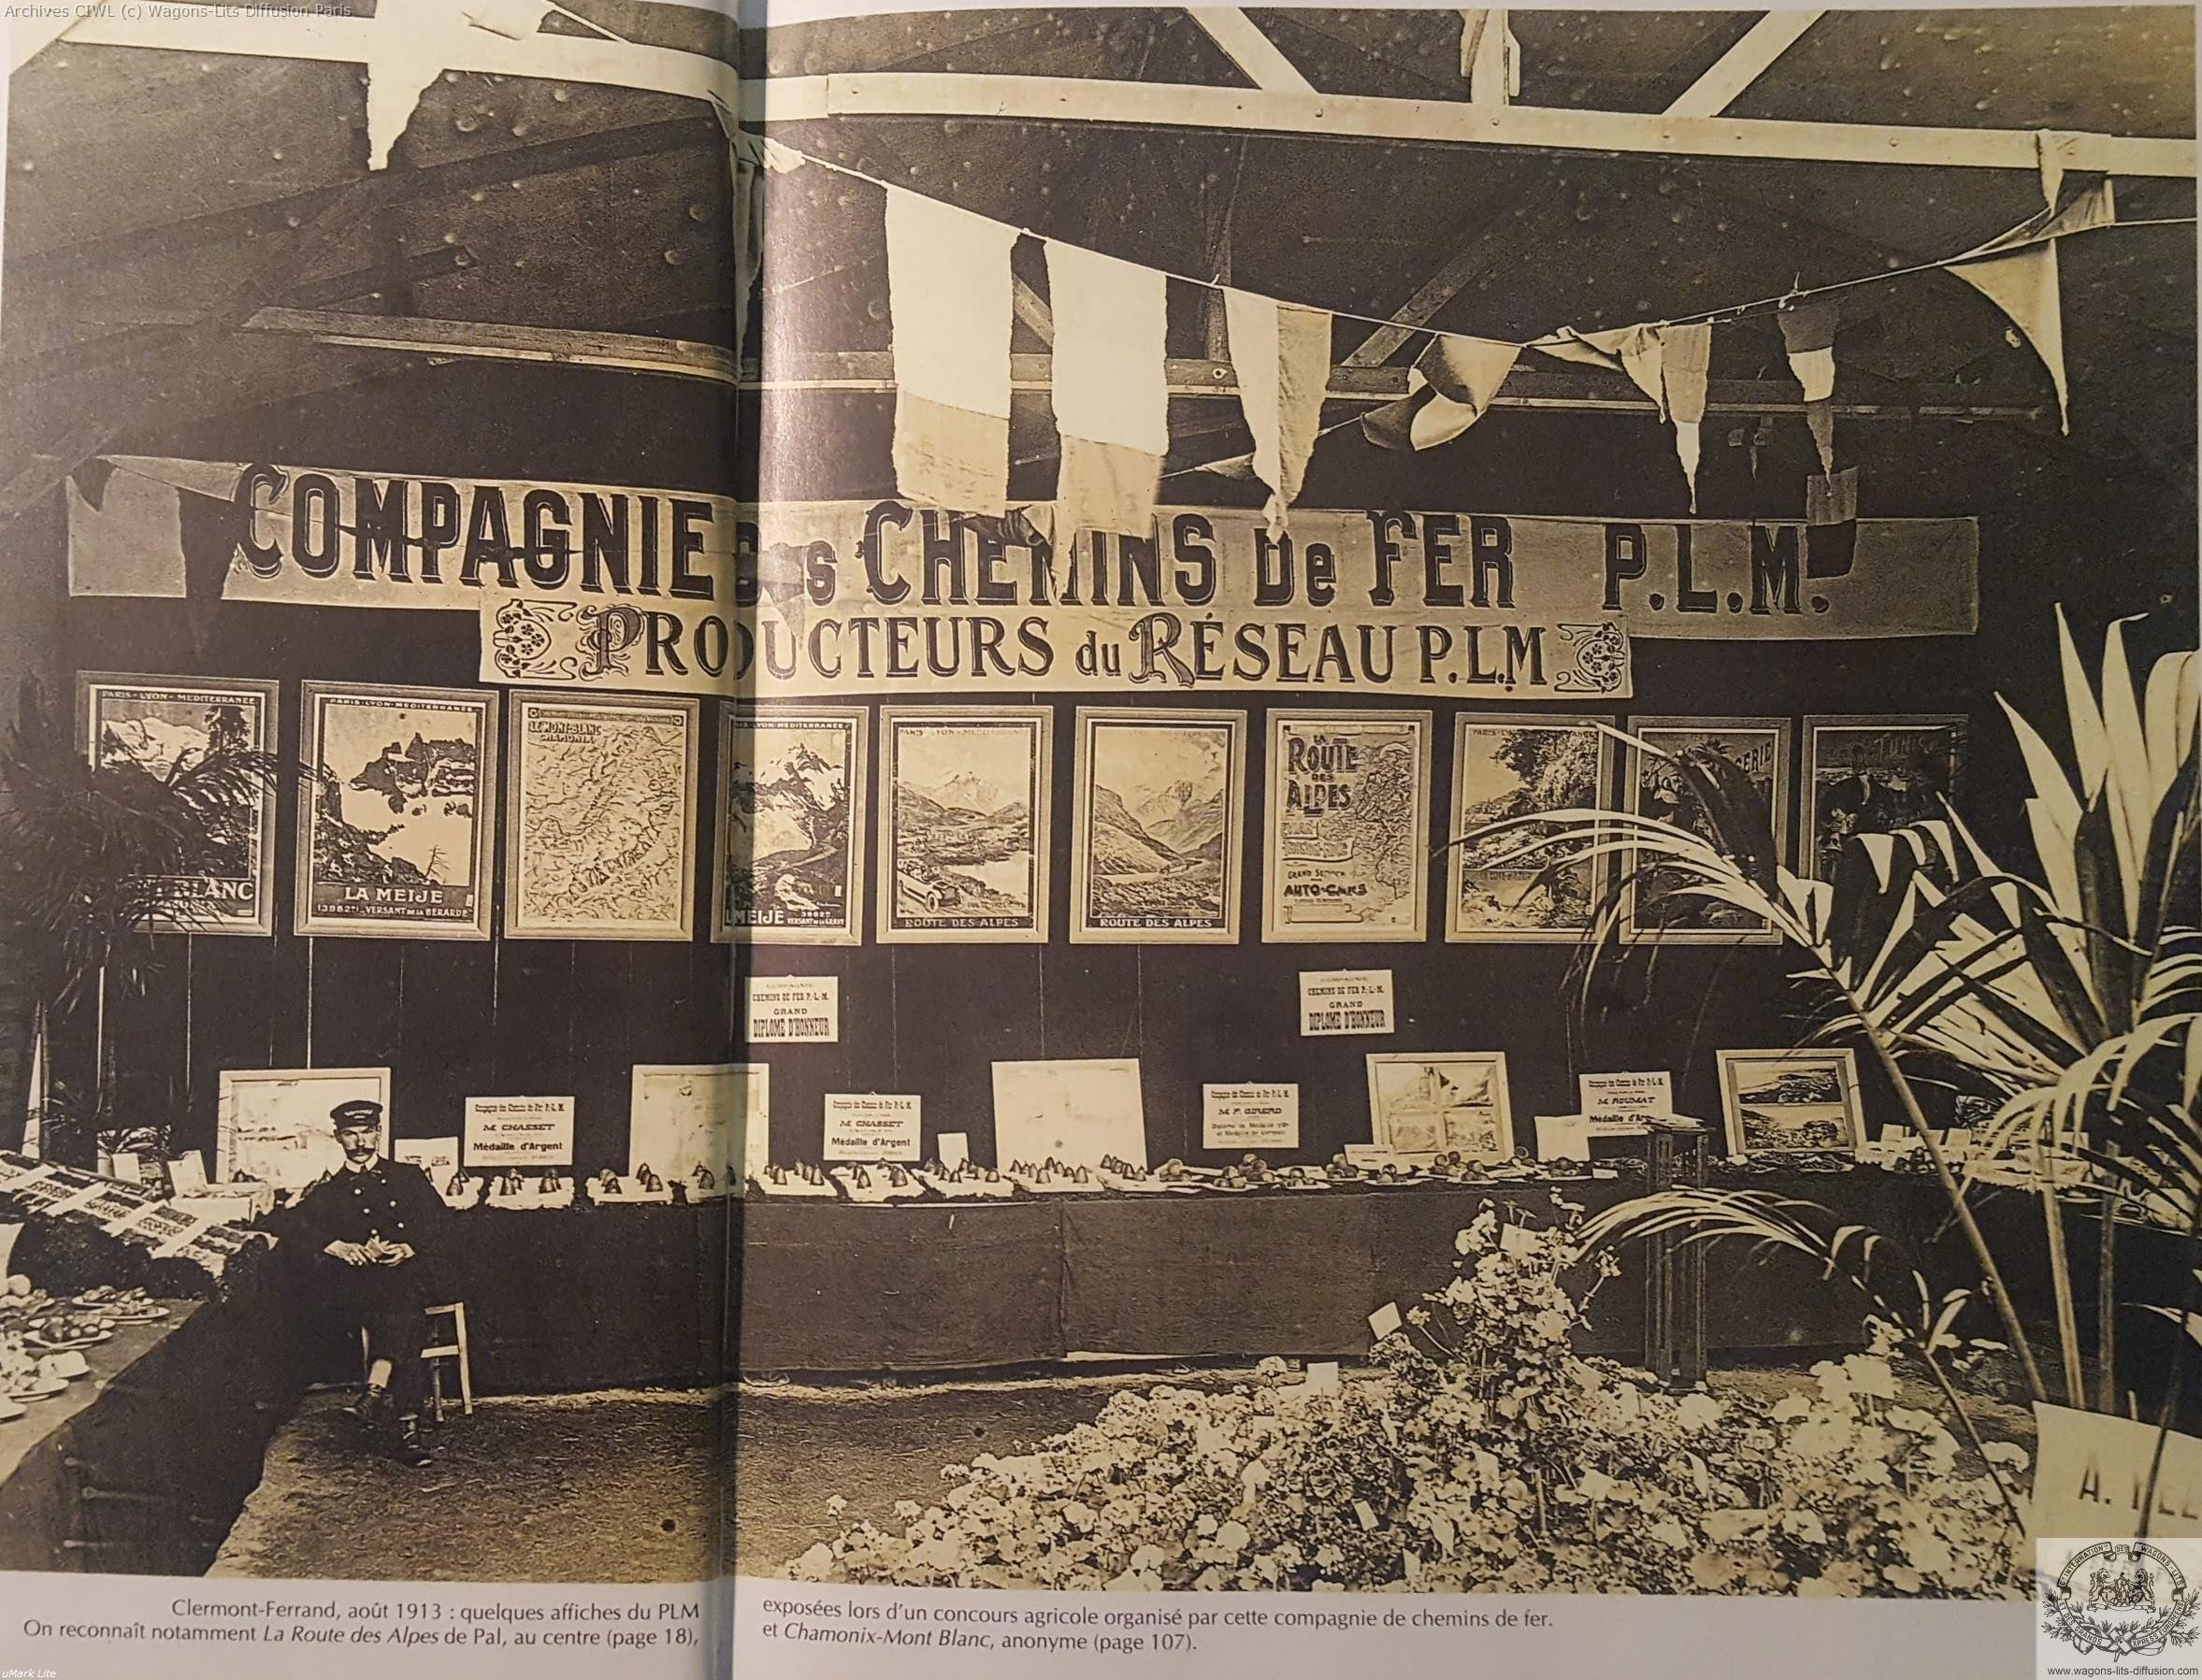 Plm exposition affiches 1913